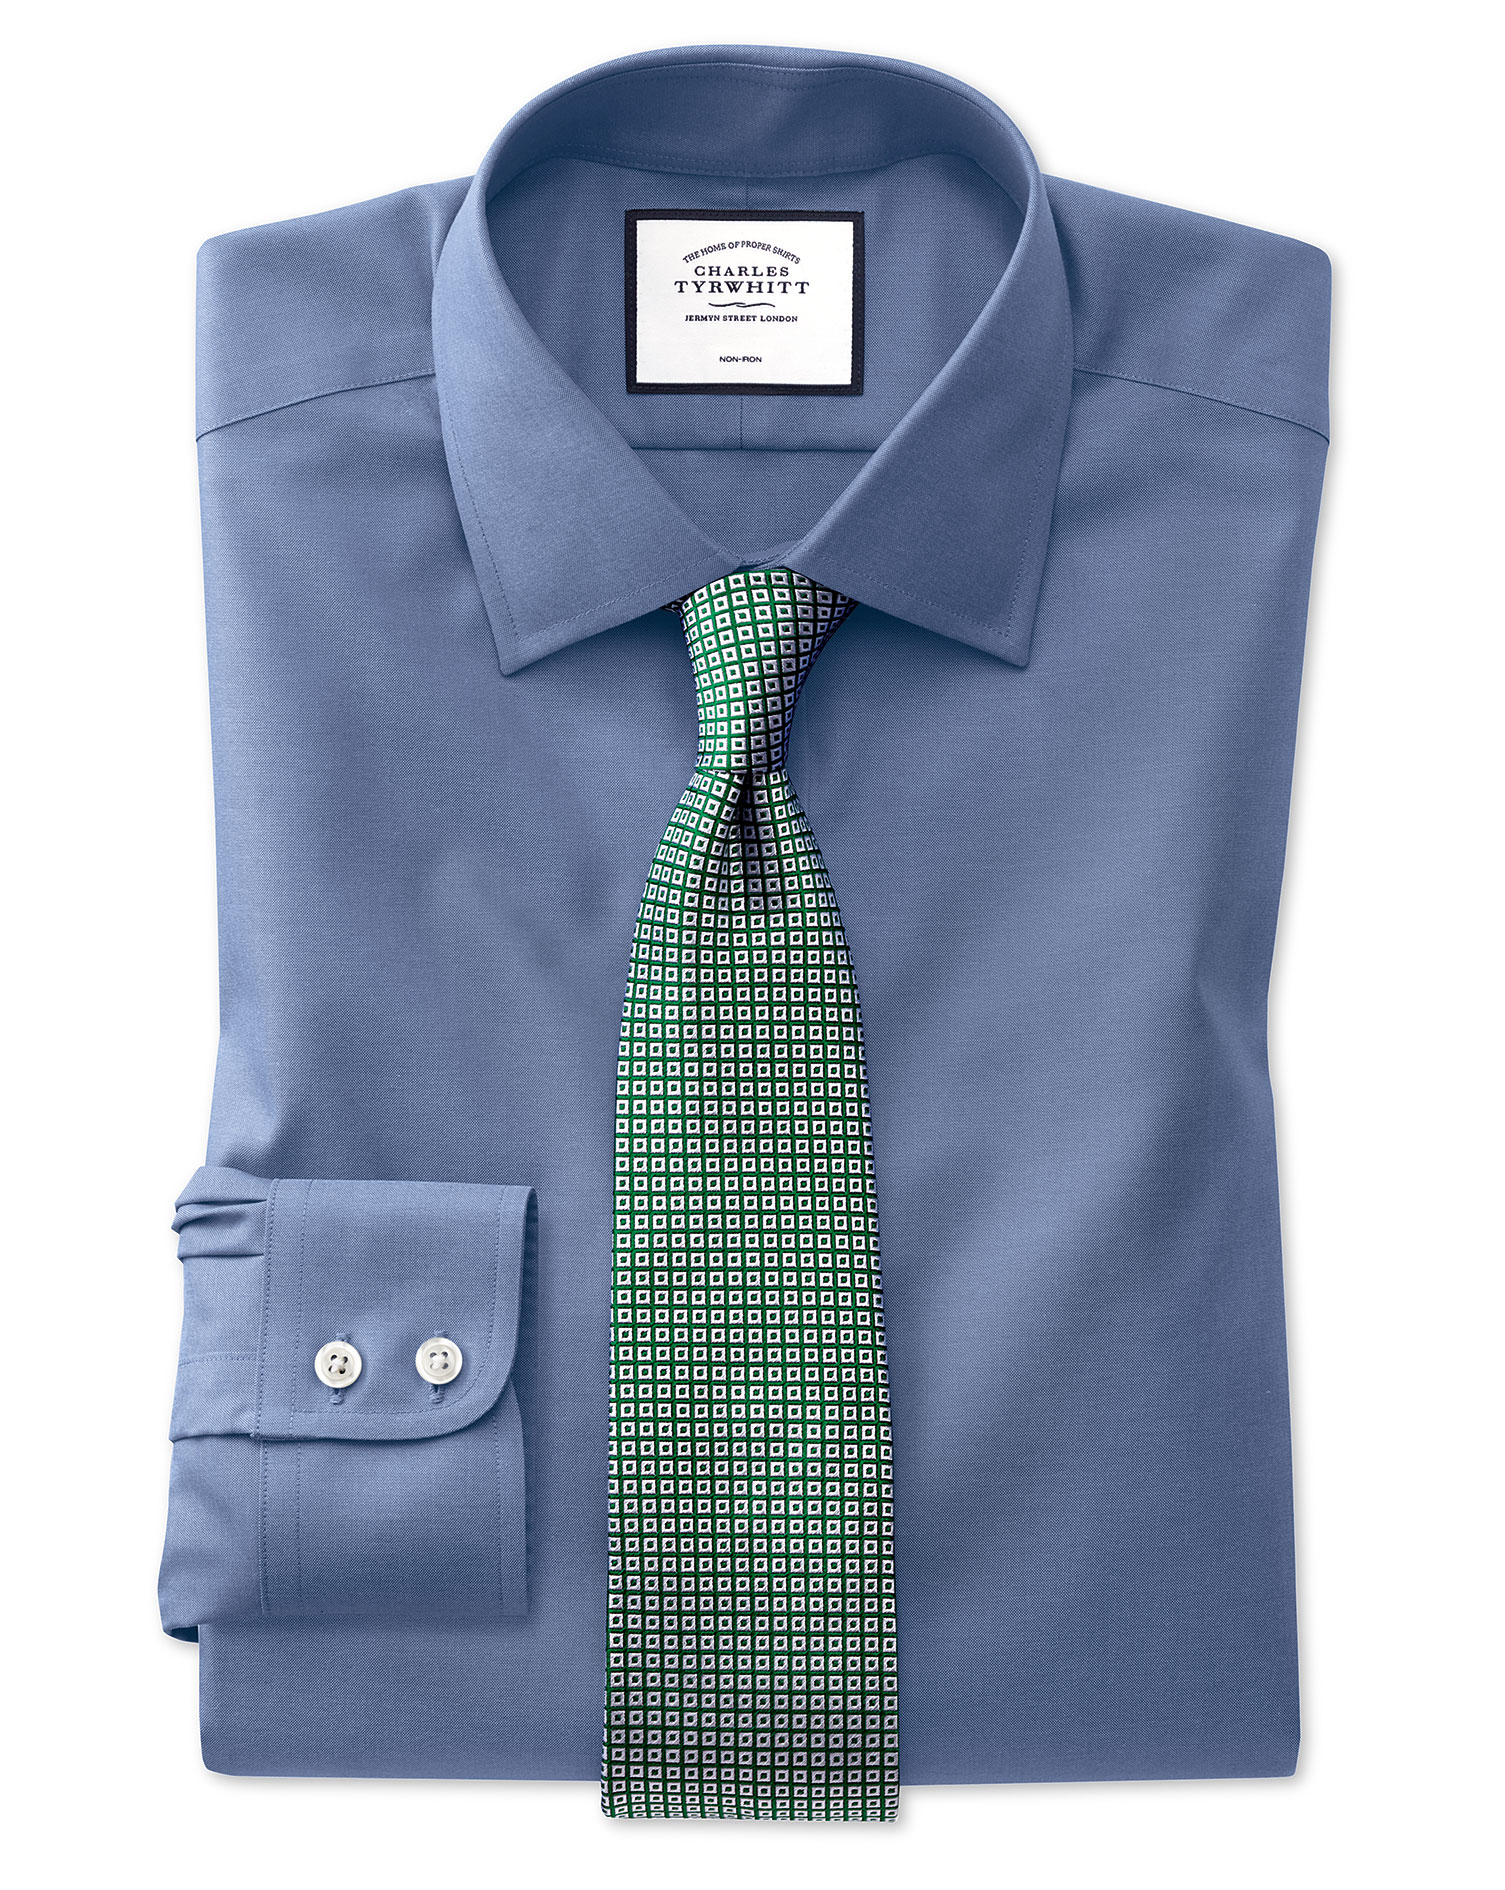 Slim Fit Mid-Blue Non-Iron Pinpoint Oxford Cotton Formal Shirt Single Cuff Size 15.5/34 by Charles T